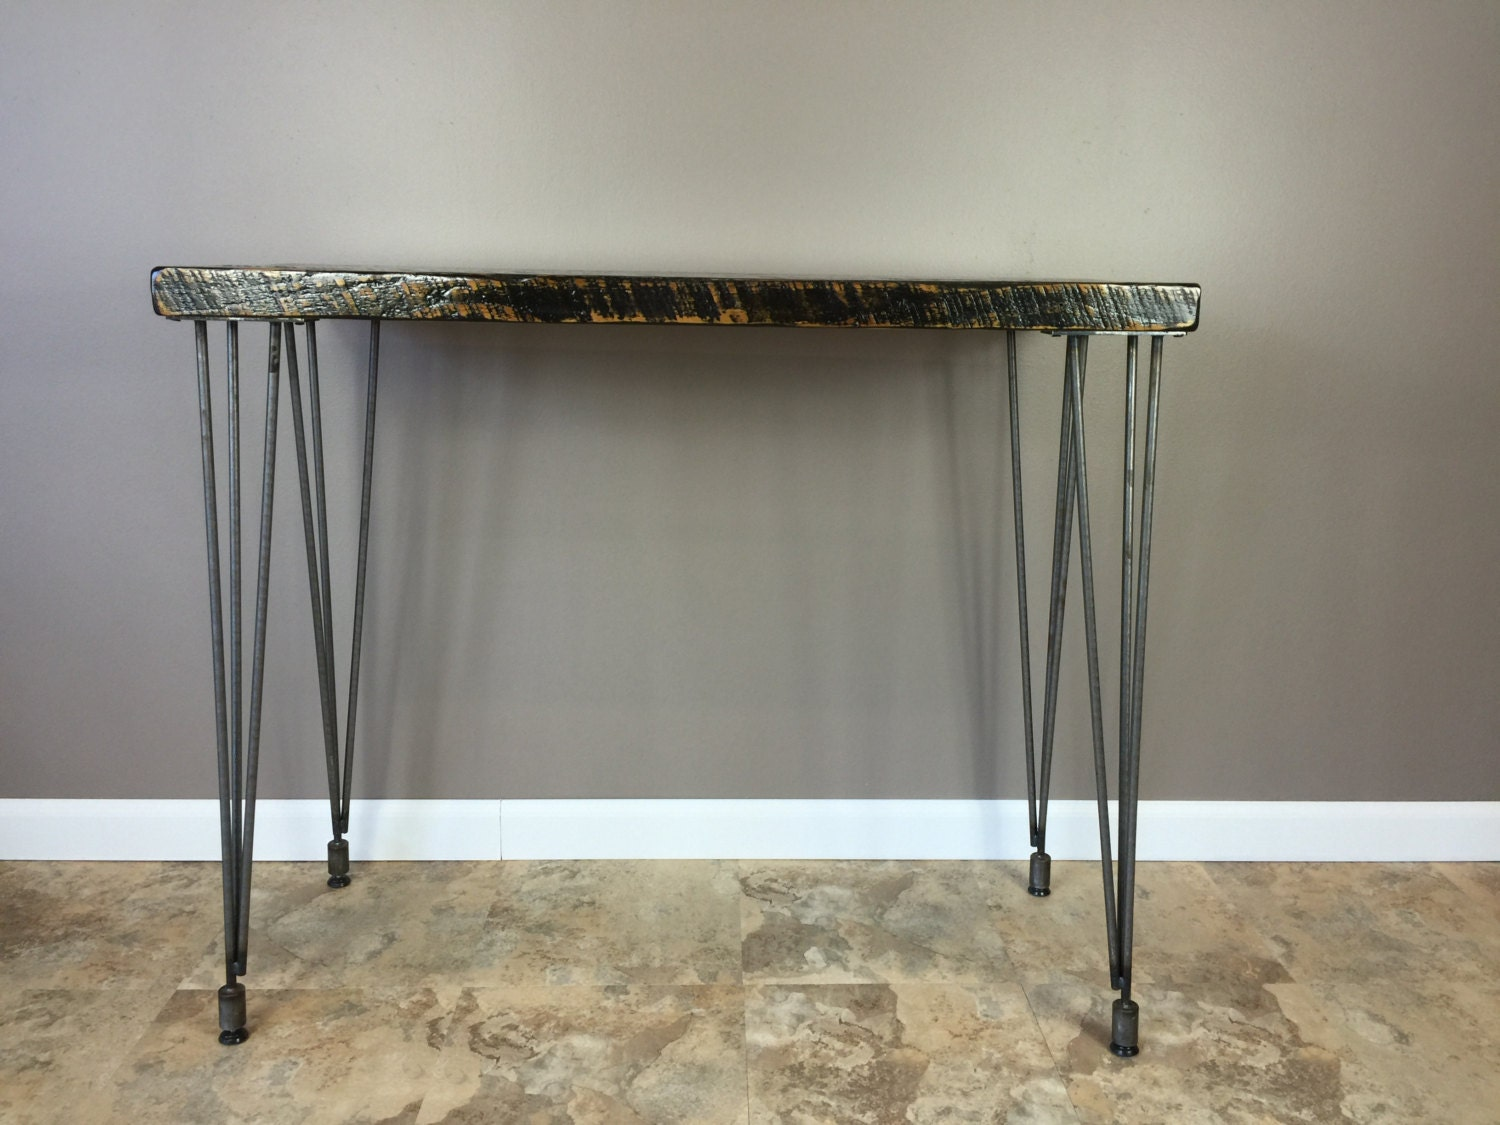 42 Inch High Reclaimed Wood Table With Leveling Hairpin Legs